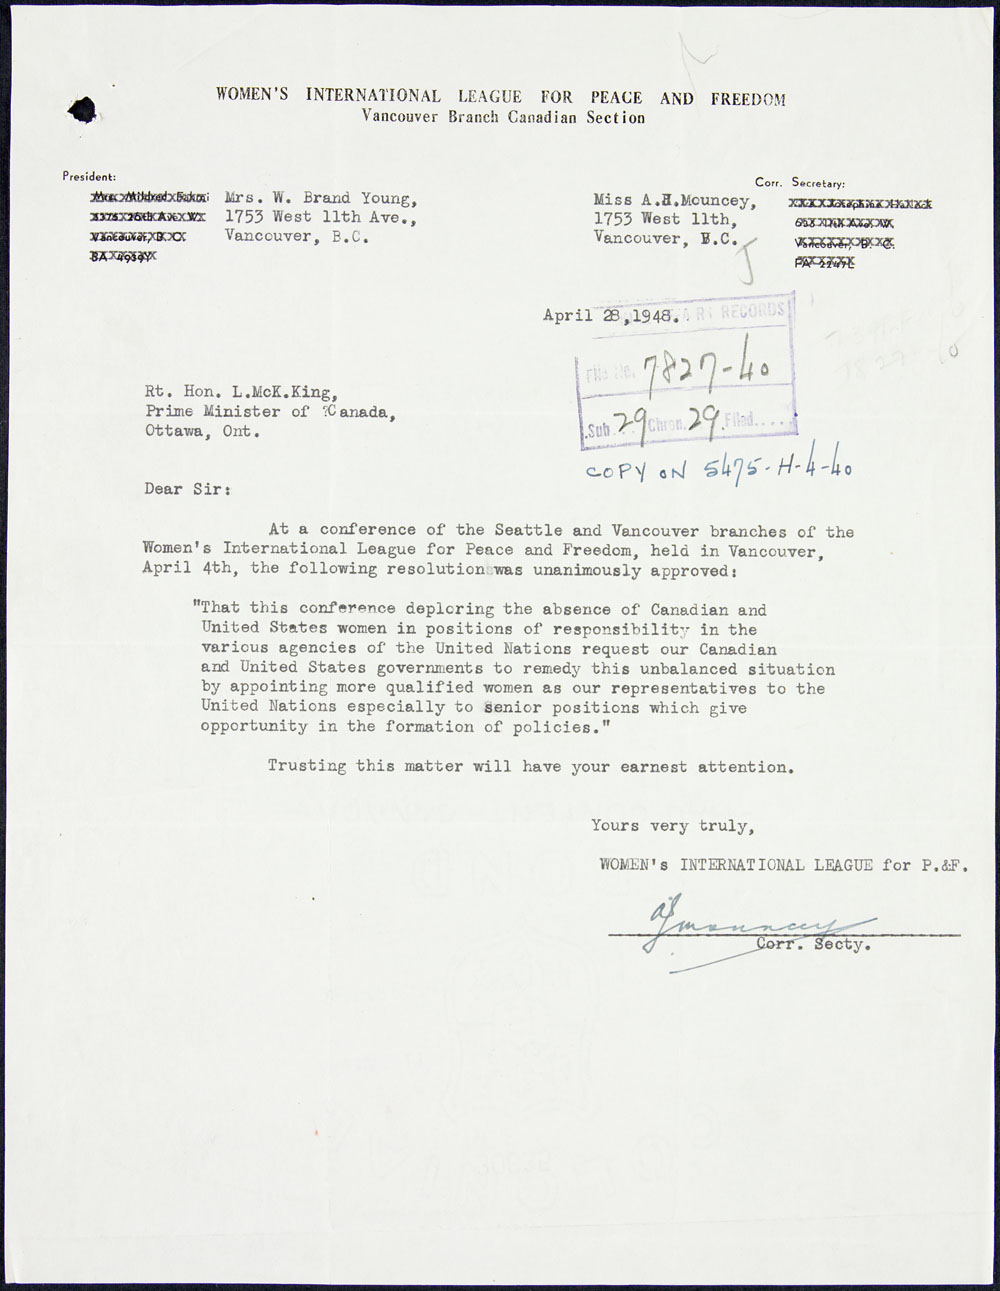 Letter to Prime Minister William Lyon Mackenzie King from the Women's International League for Peace and Freedom calling for the appointment of women to positions of influence at the United Nations, April 28, 1948